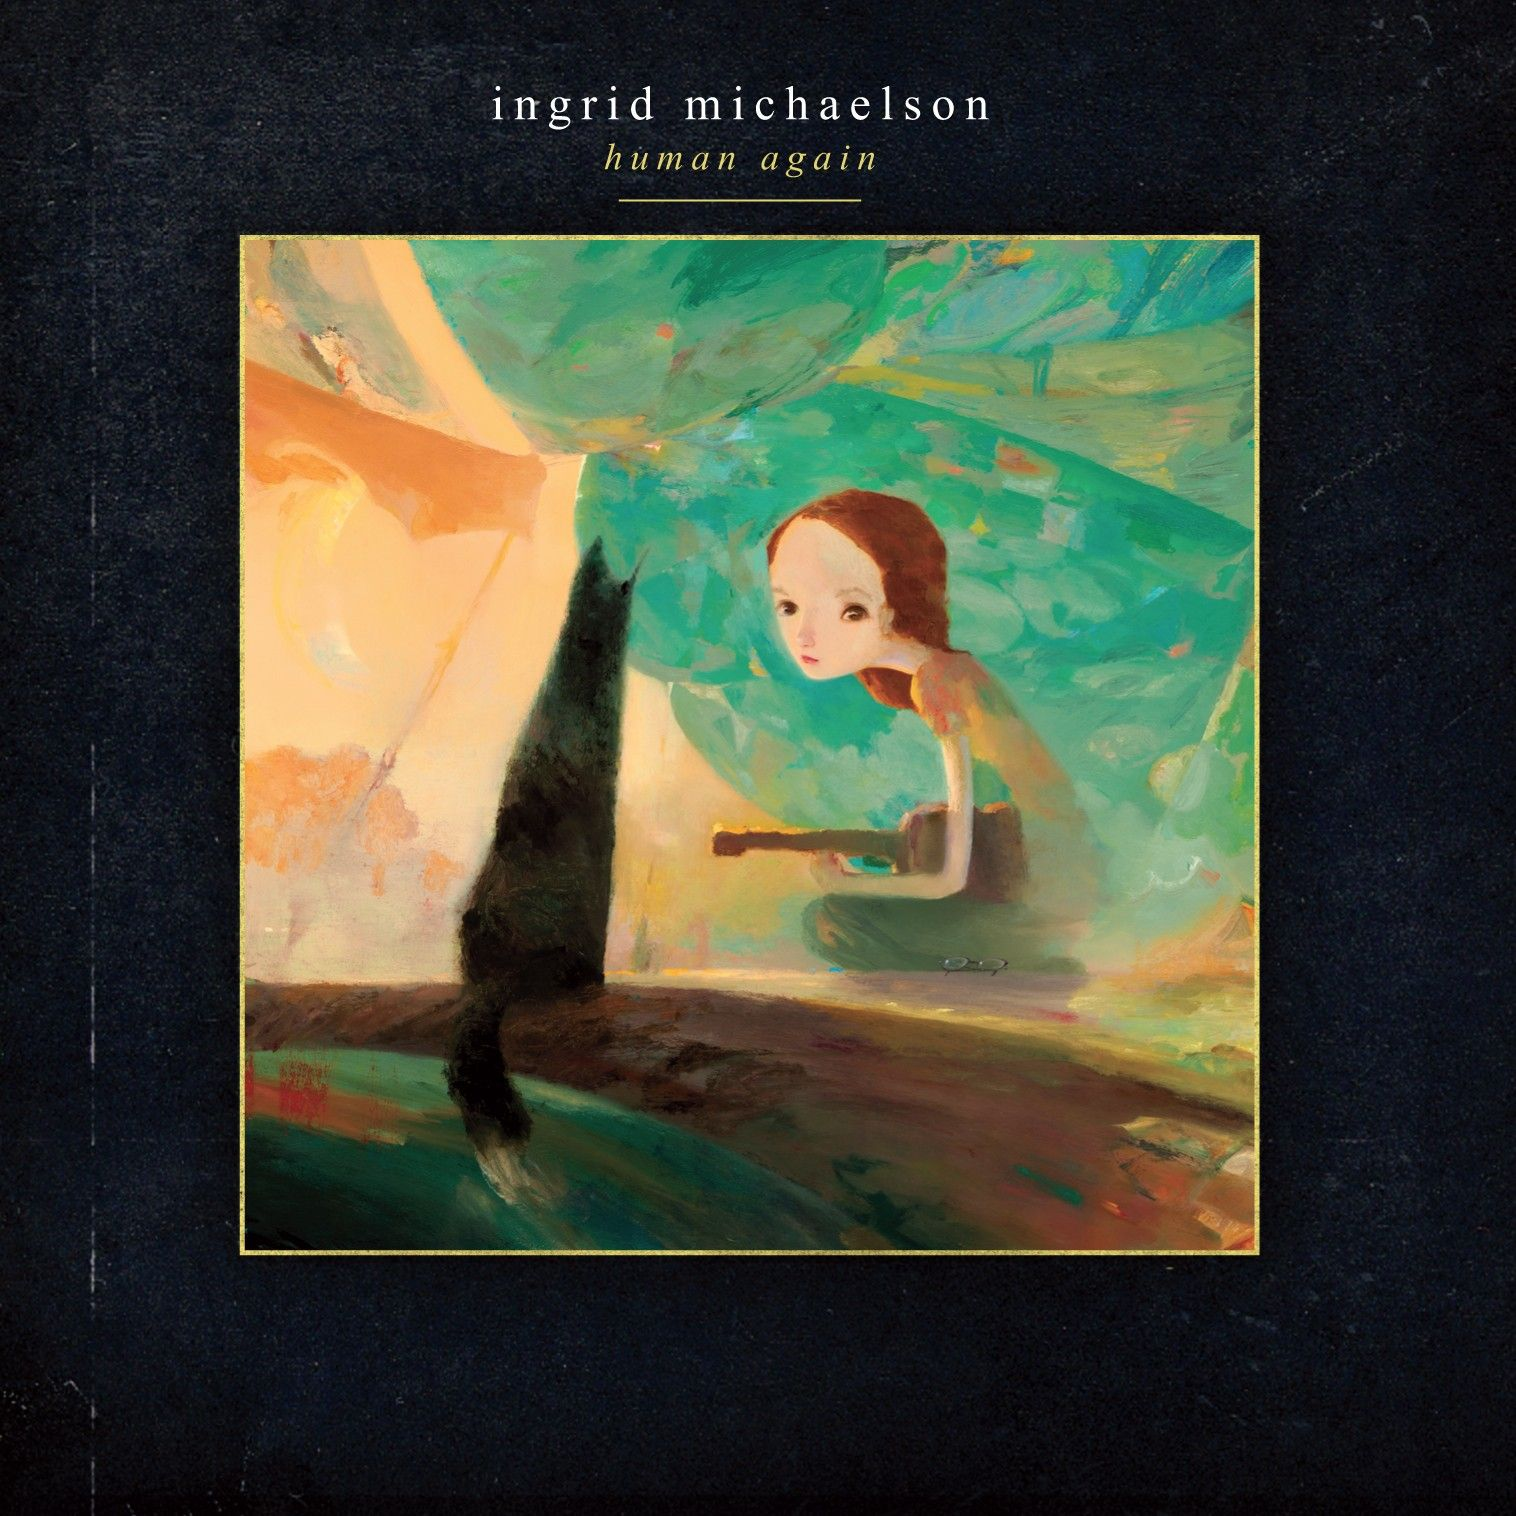 Ingrid michaelson human again 2012 book illustration releases joe sorren x ingrid michaelson human again album cover and print arrested motion hexwebz Gallery